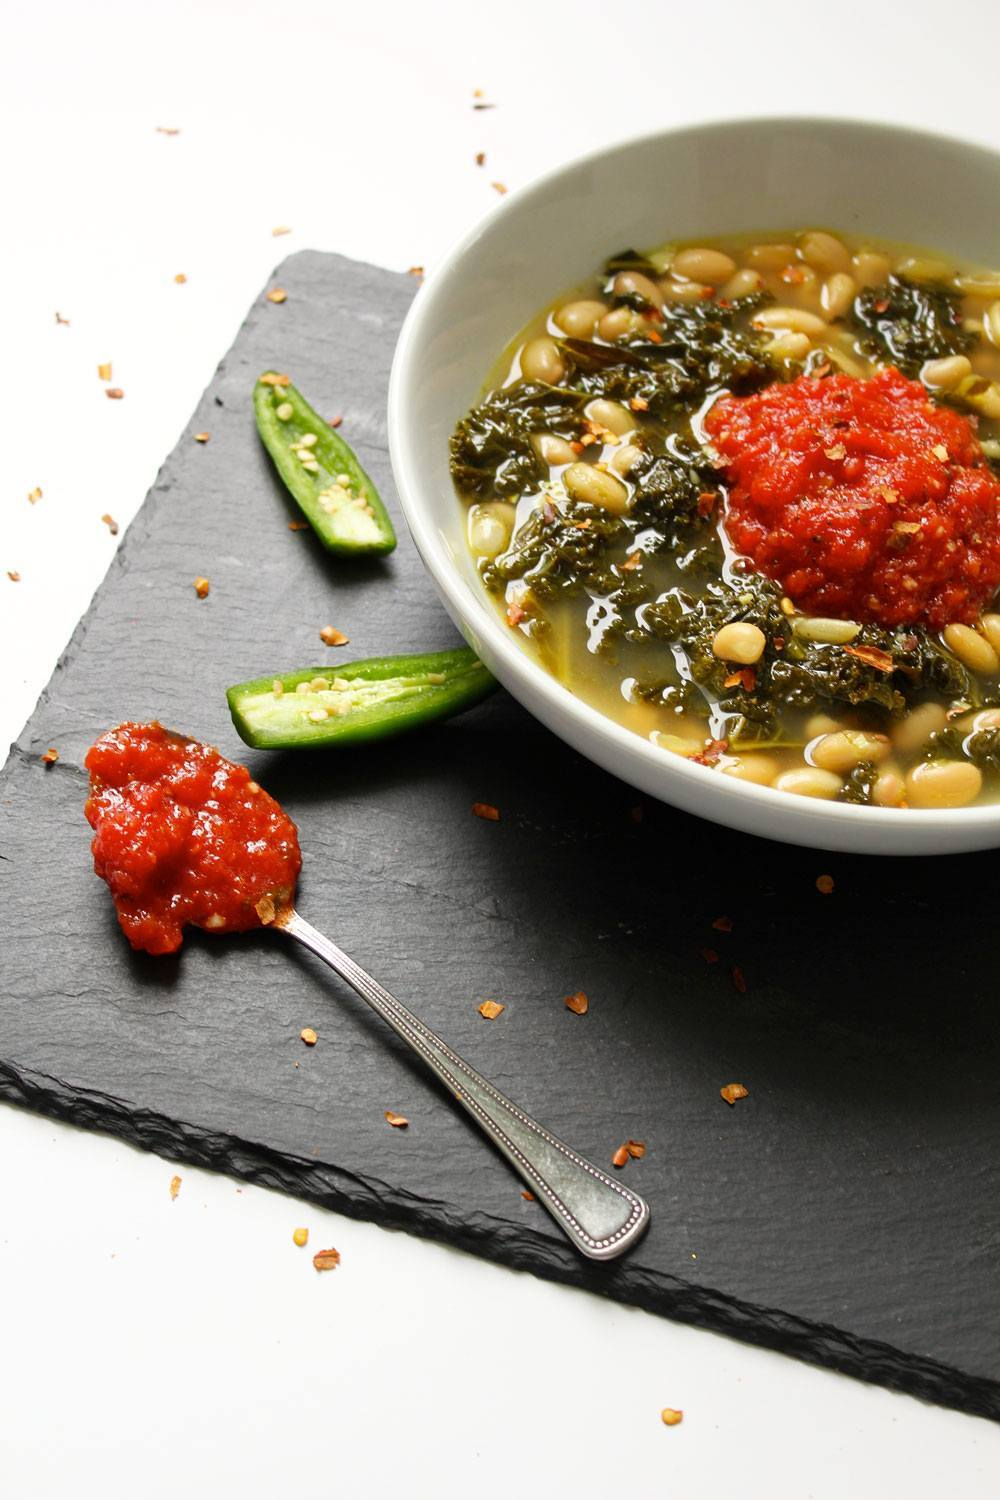 Recipe: Spicy Greens and Beans   PainDoctor.com